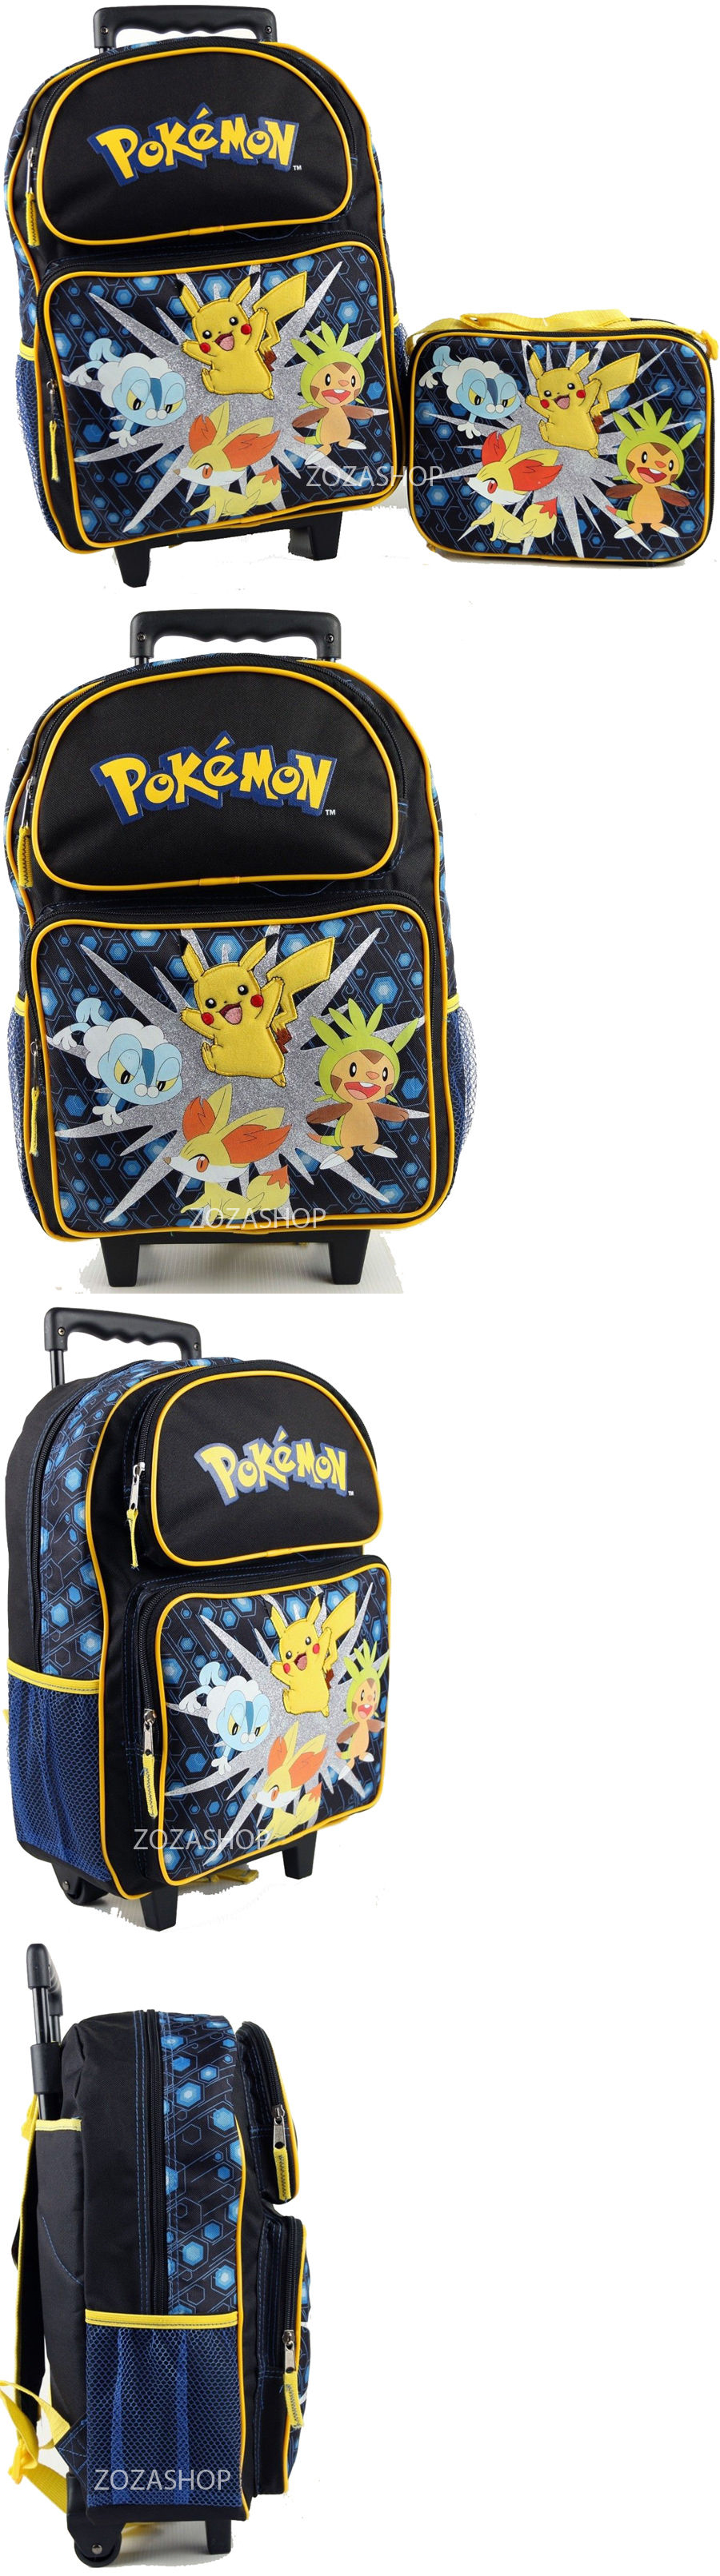 951a228635a Backpacks and Bags 57882  Pokemon 16 Large Roller Backpack Lunch Bag 2Pc Rolling  Bag New